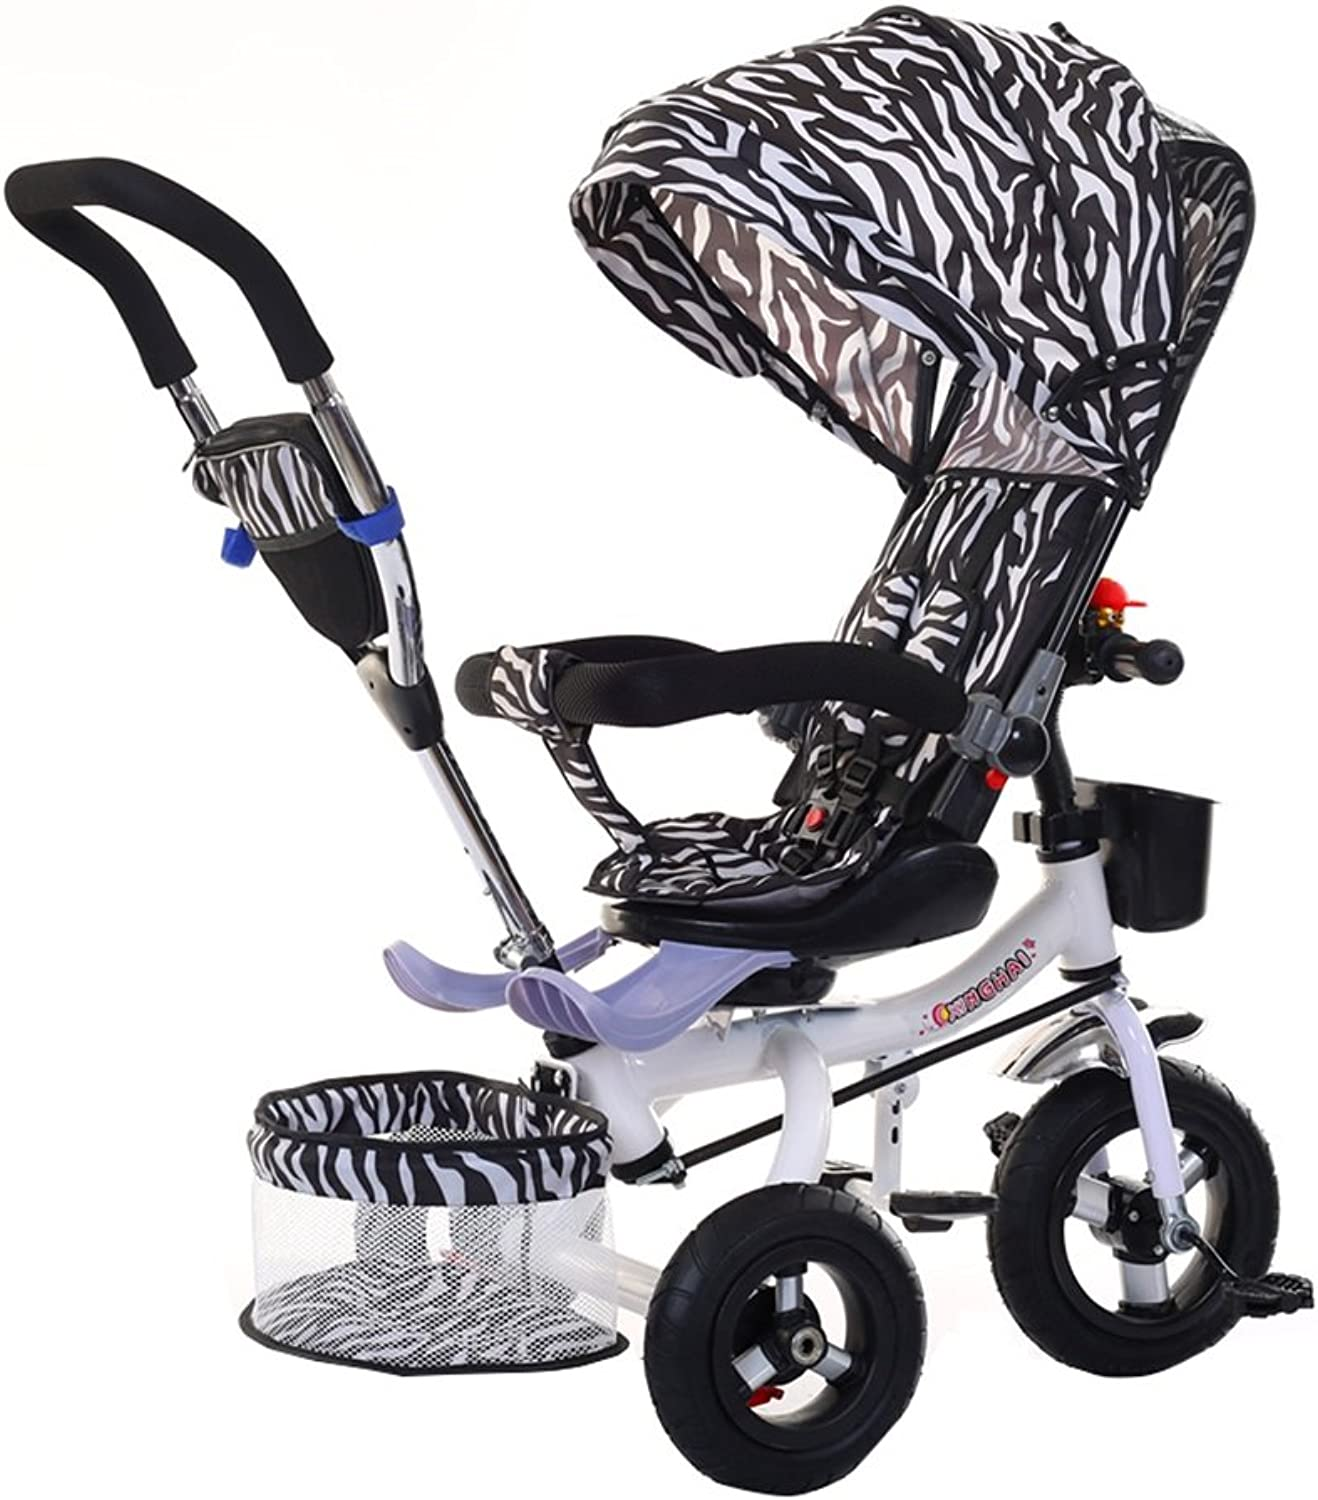 Kids' Tricycles Kids Tricycle Folding Bike Baby Baby Titanium Empty Wheel Inflatable Wheel Foam Wheel 16 Years Old Trolley Zebra Shed 20KG Kid's Outdoor Riding